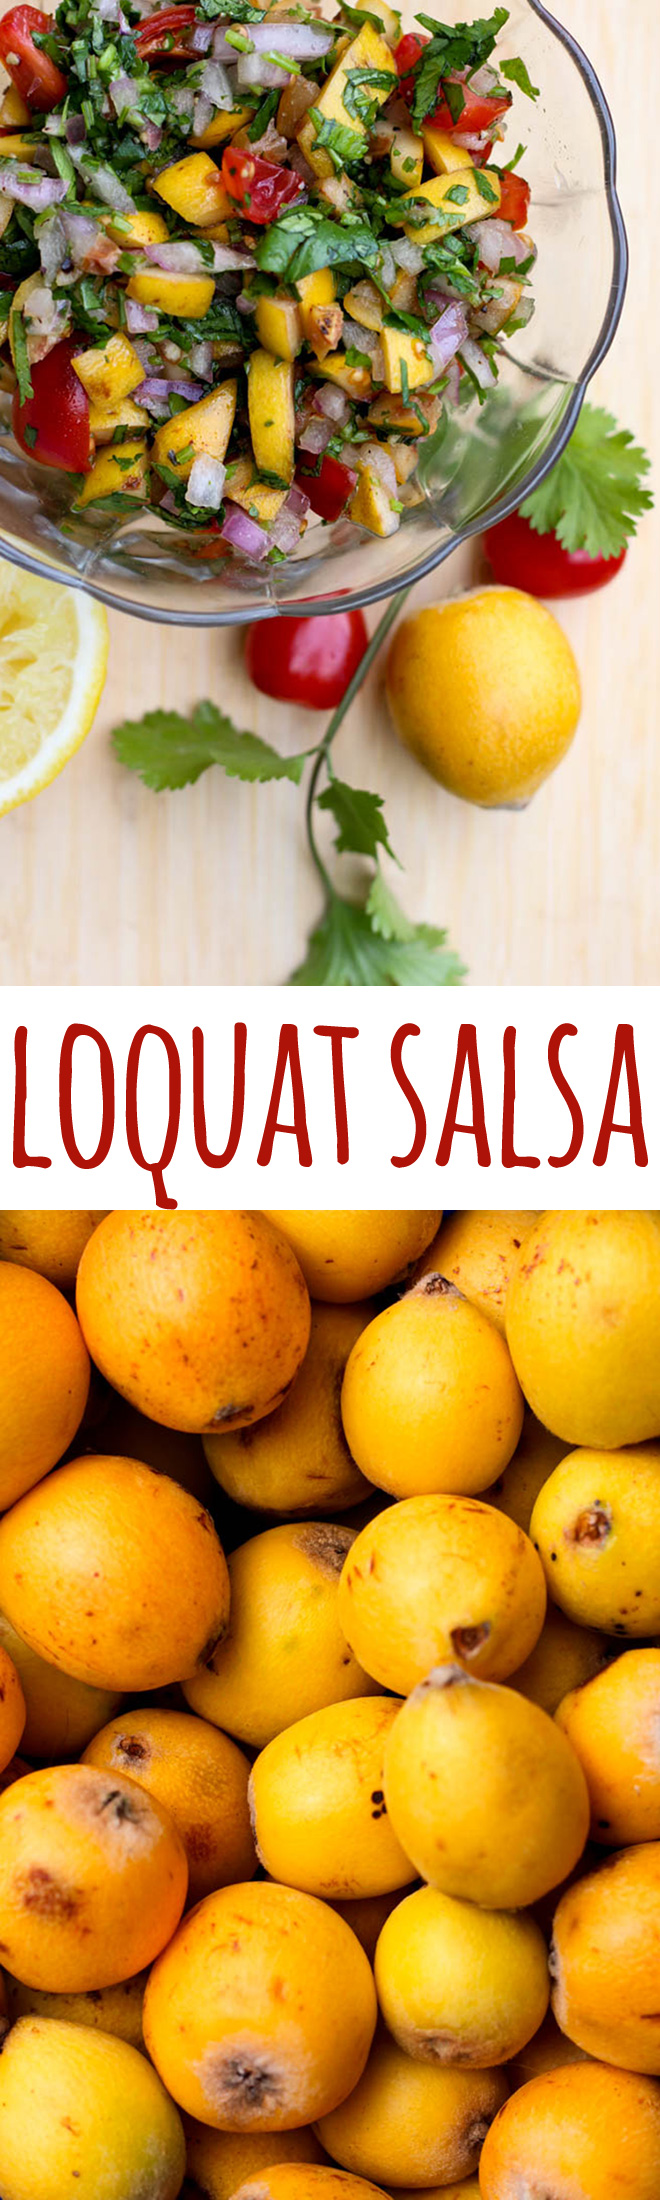 Sharp and tangy loquats are great in this simple salsa.